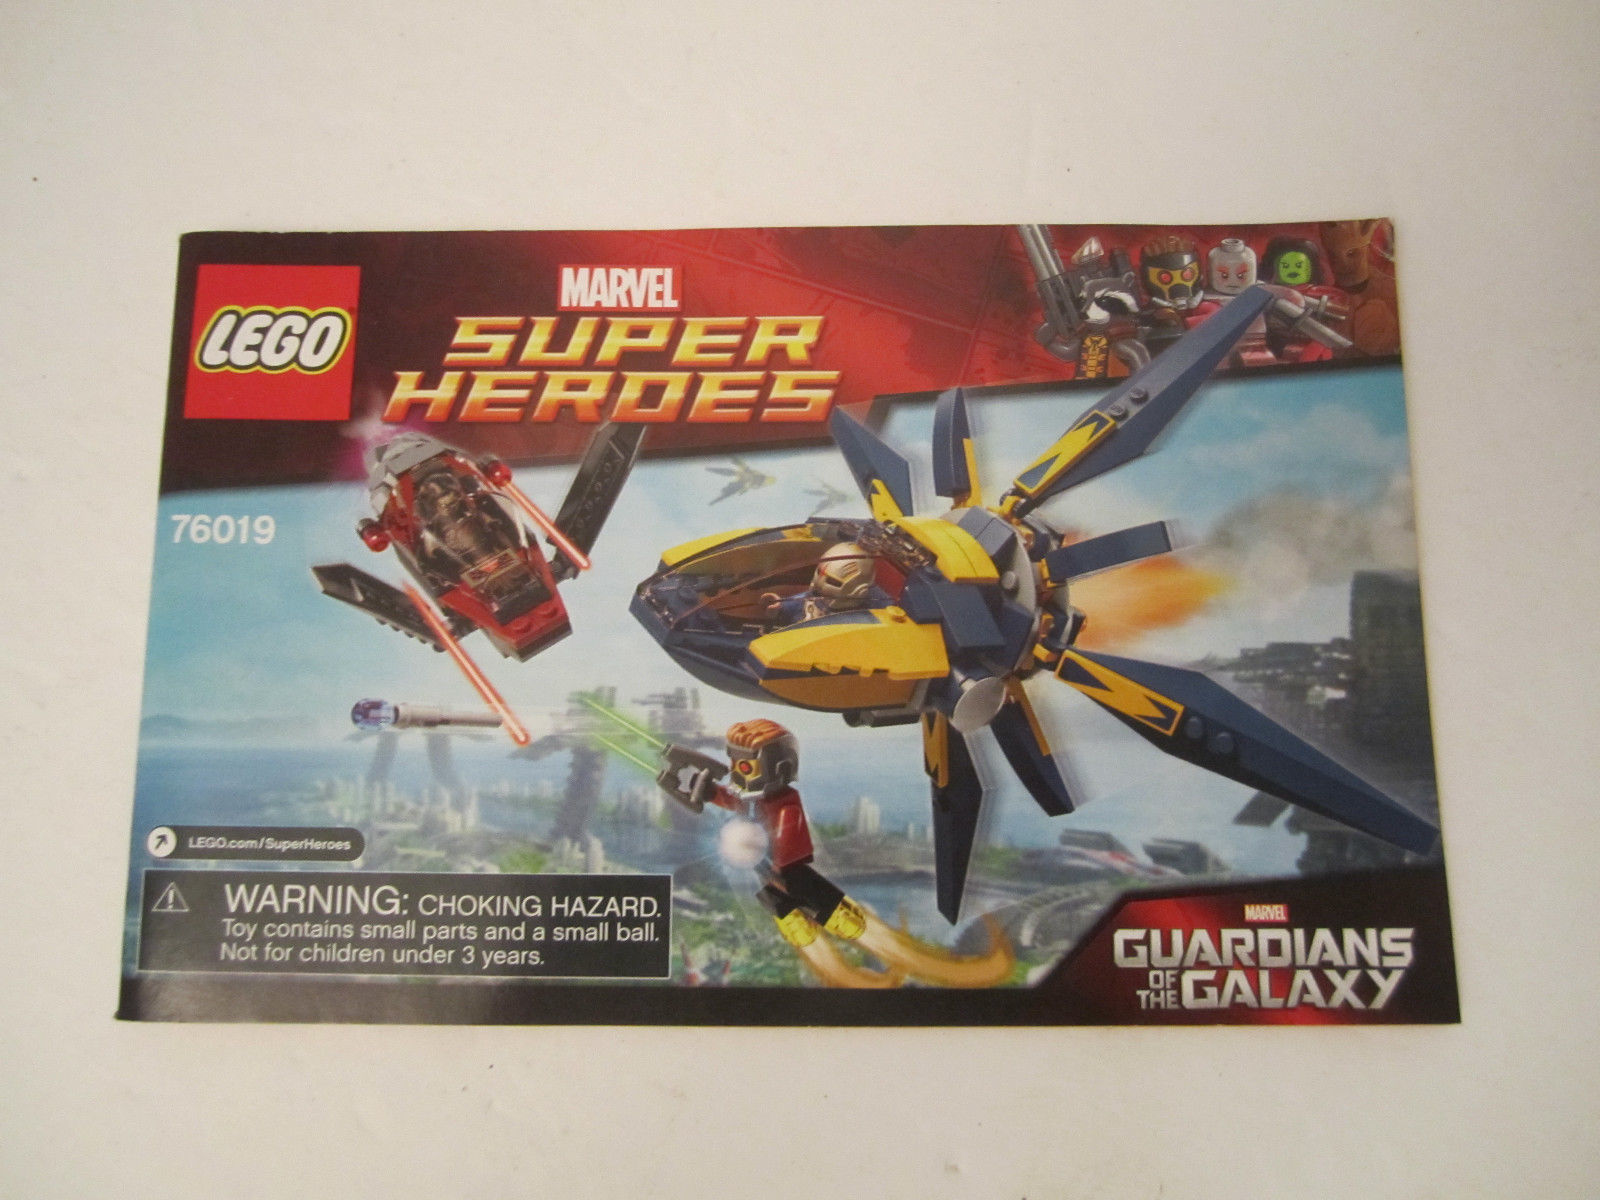 Lego Instruction Manual Only 76019 Marvel Super Heroes Guardians of the Galaxy